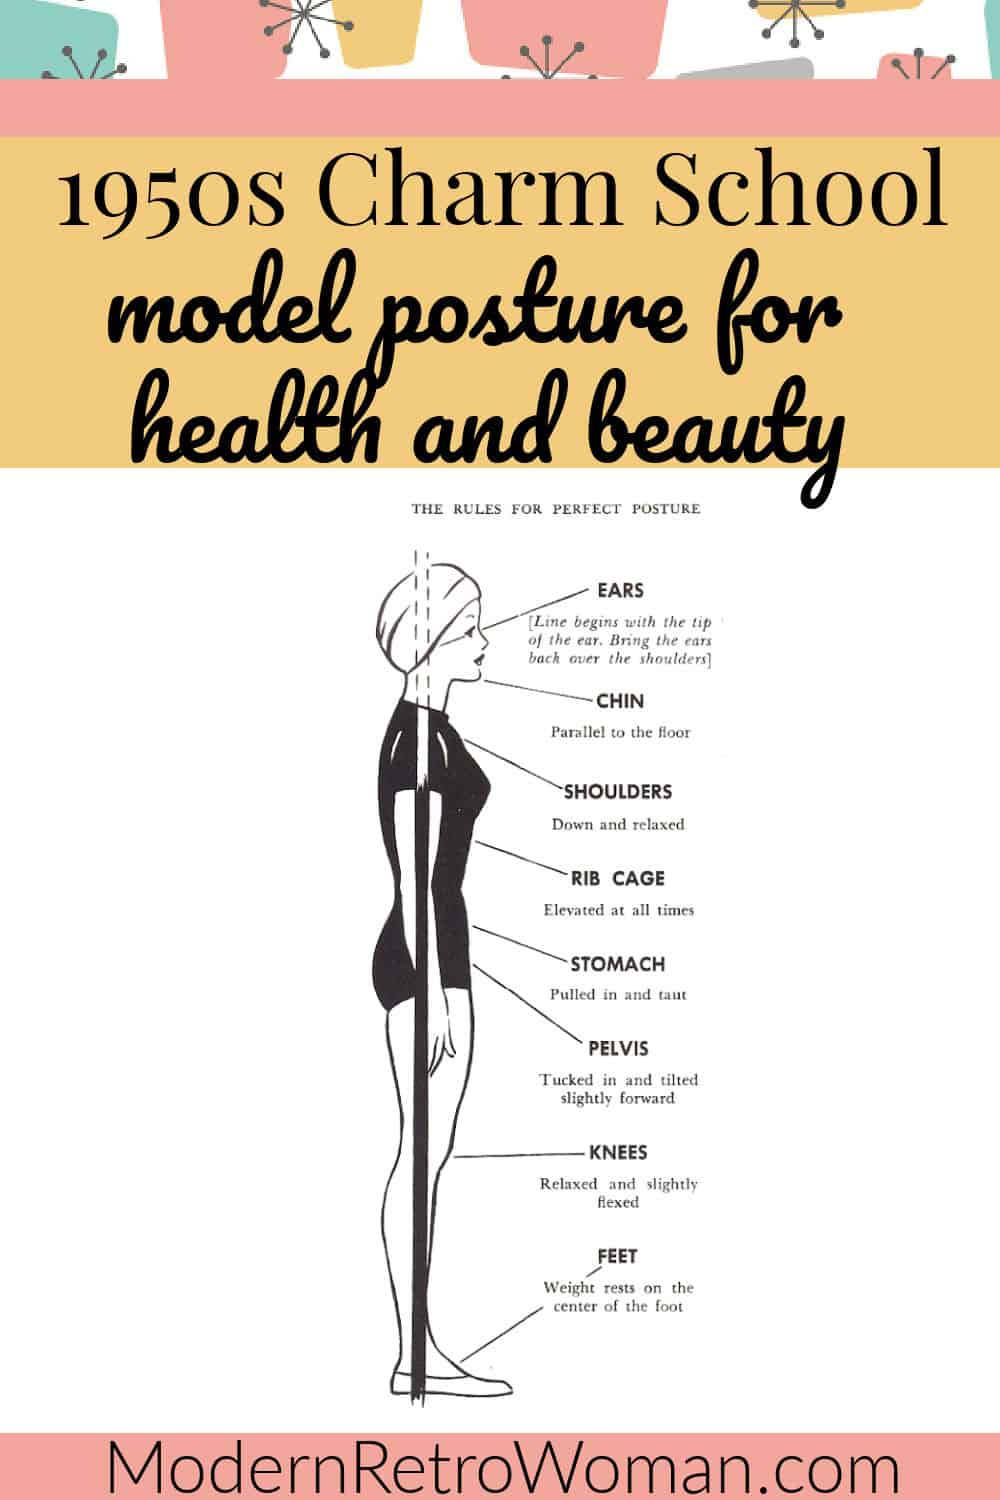 1950s Charm School: Model Posture For Health and Beauty